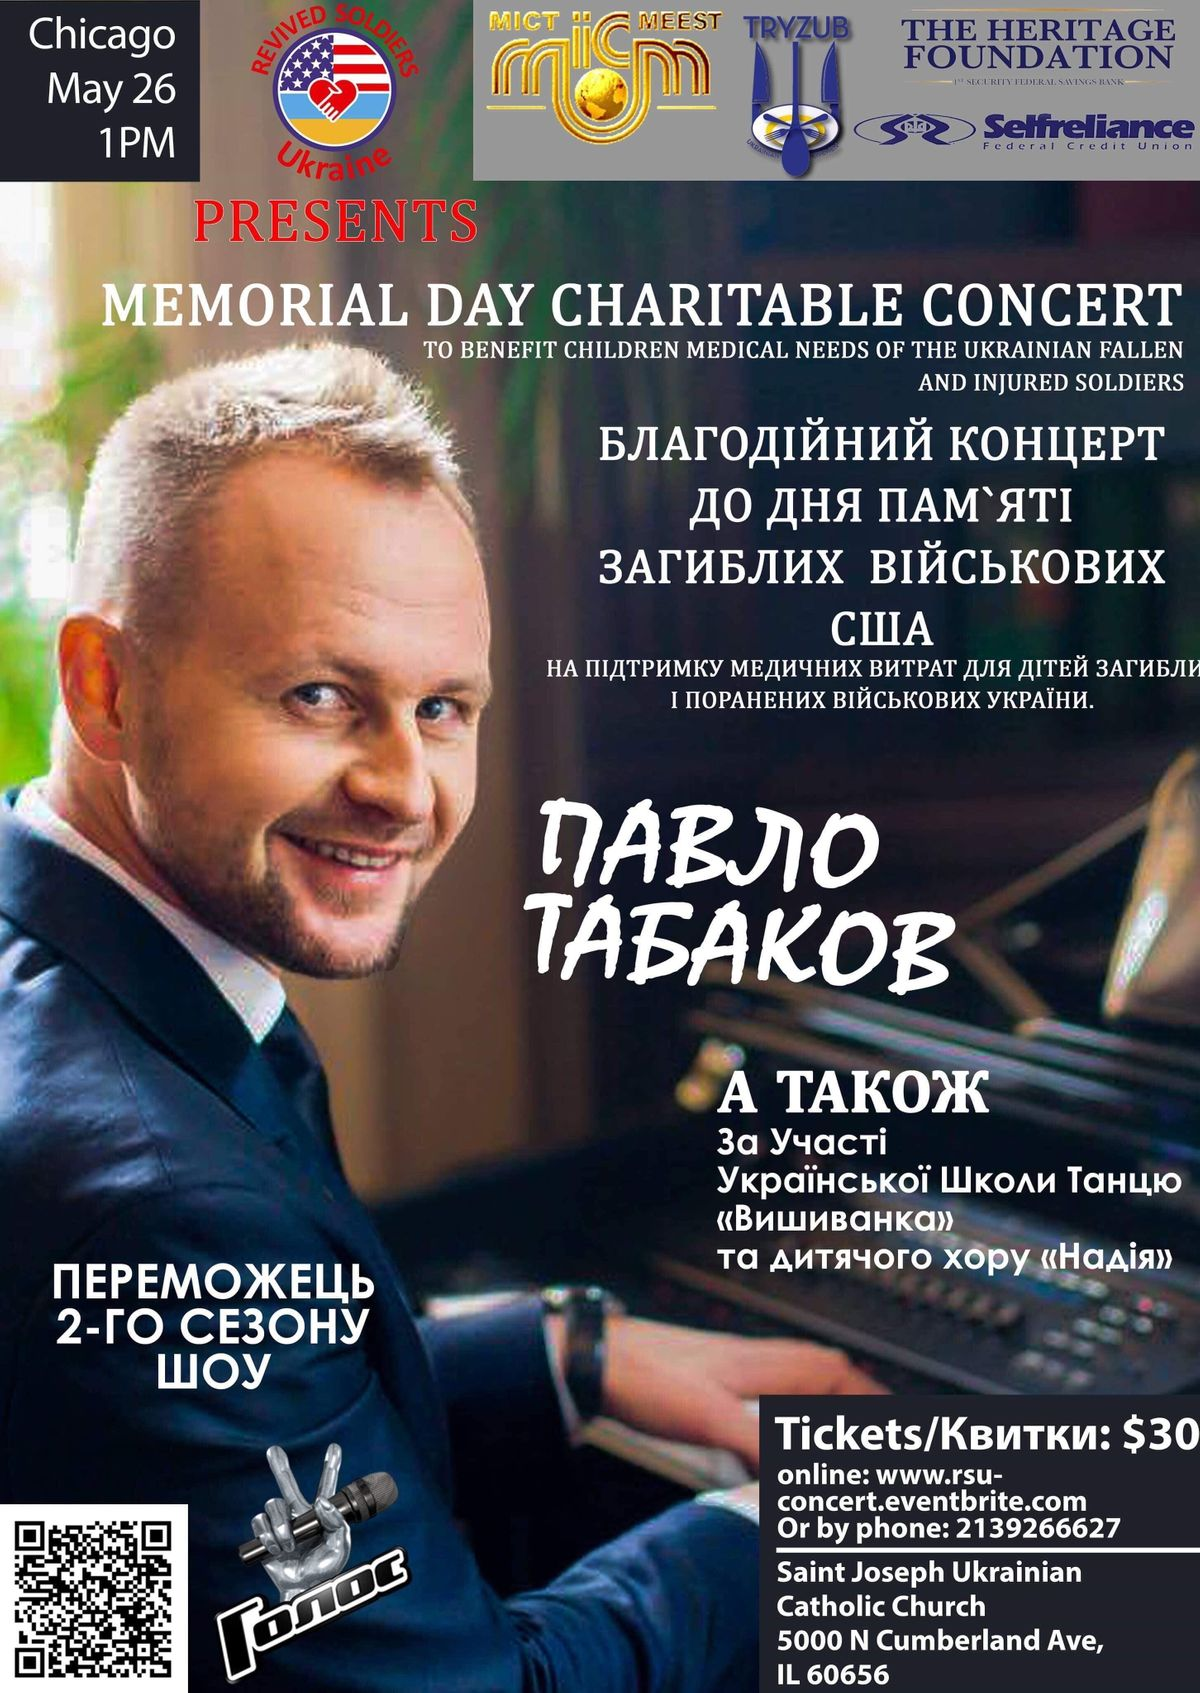 Pavlo Tabakov Charitable concert by Revived Soldiers Ukraine